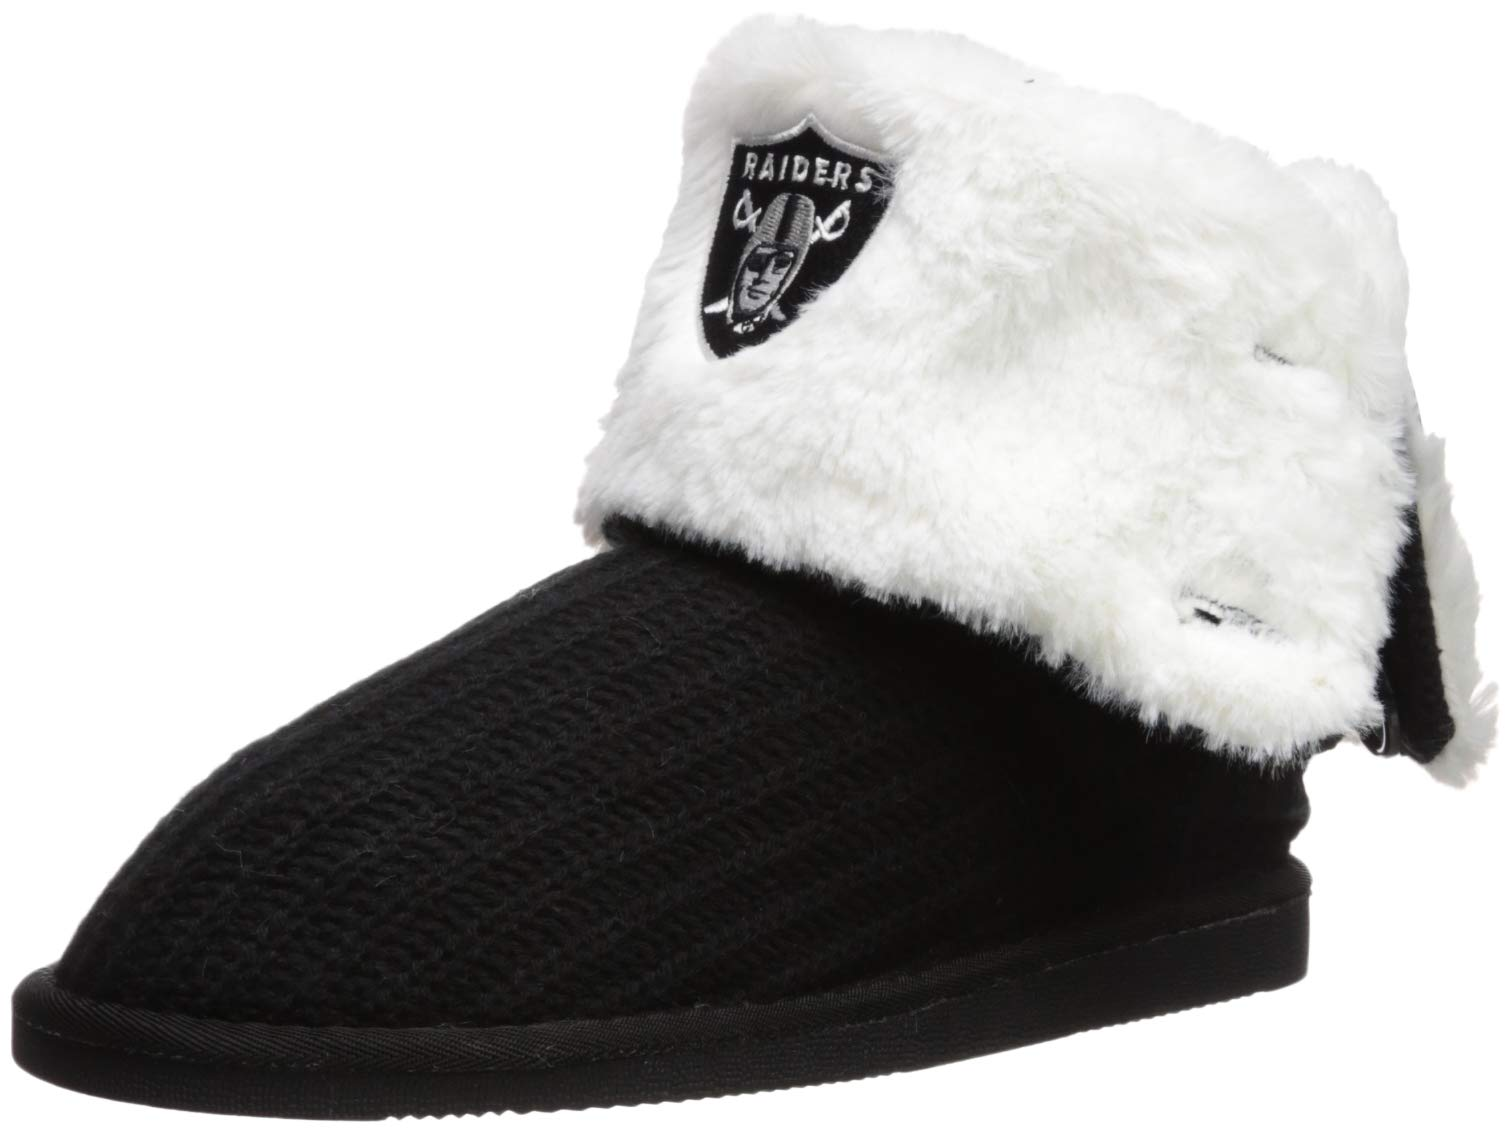 Oakland Raiders Knit High End Button Boot Slipper Large